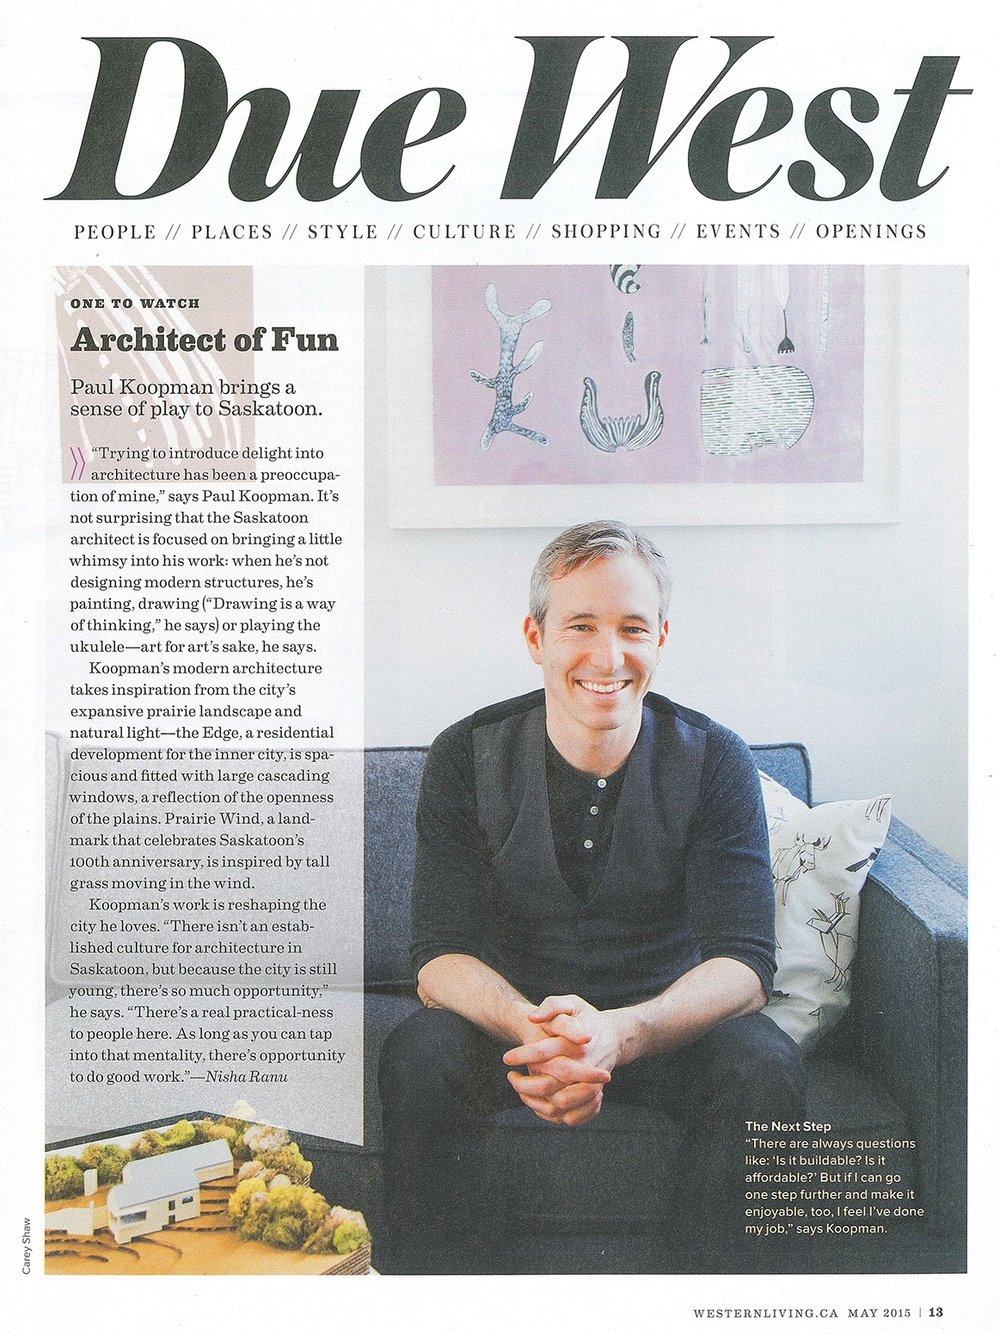 Ranu, N. (2015, May). Architect of fun.  Western living, 41  (4), 13.   Link to article